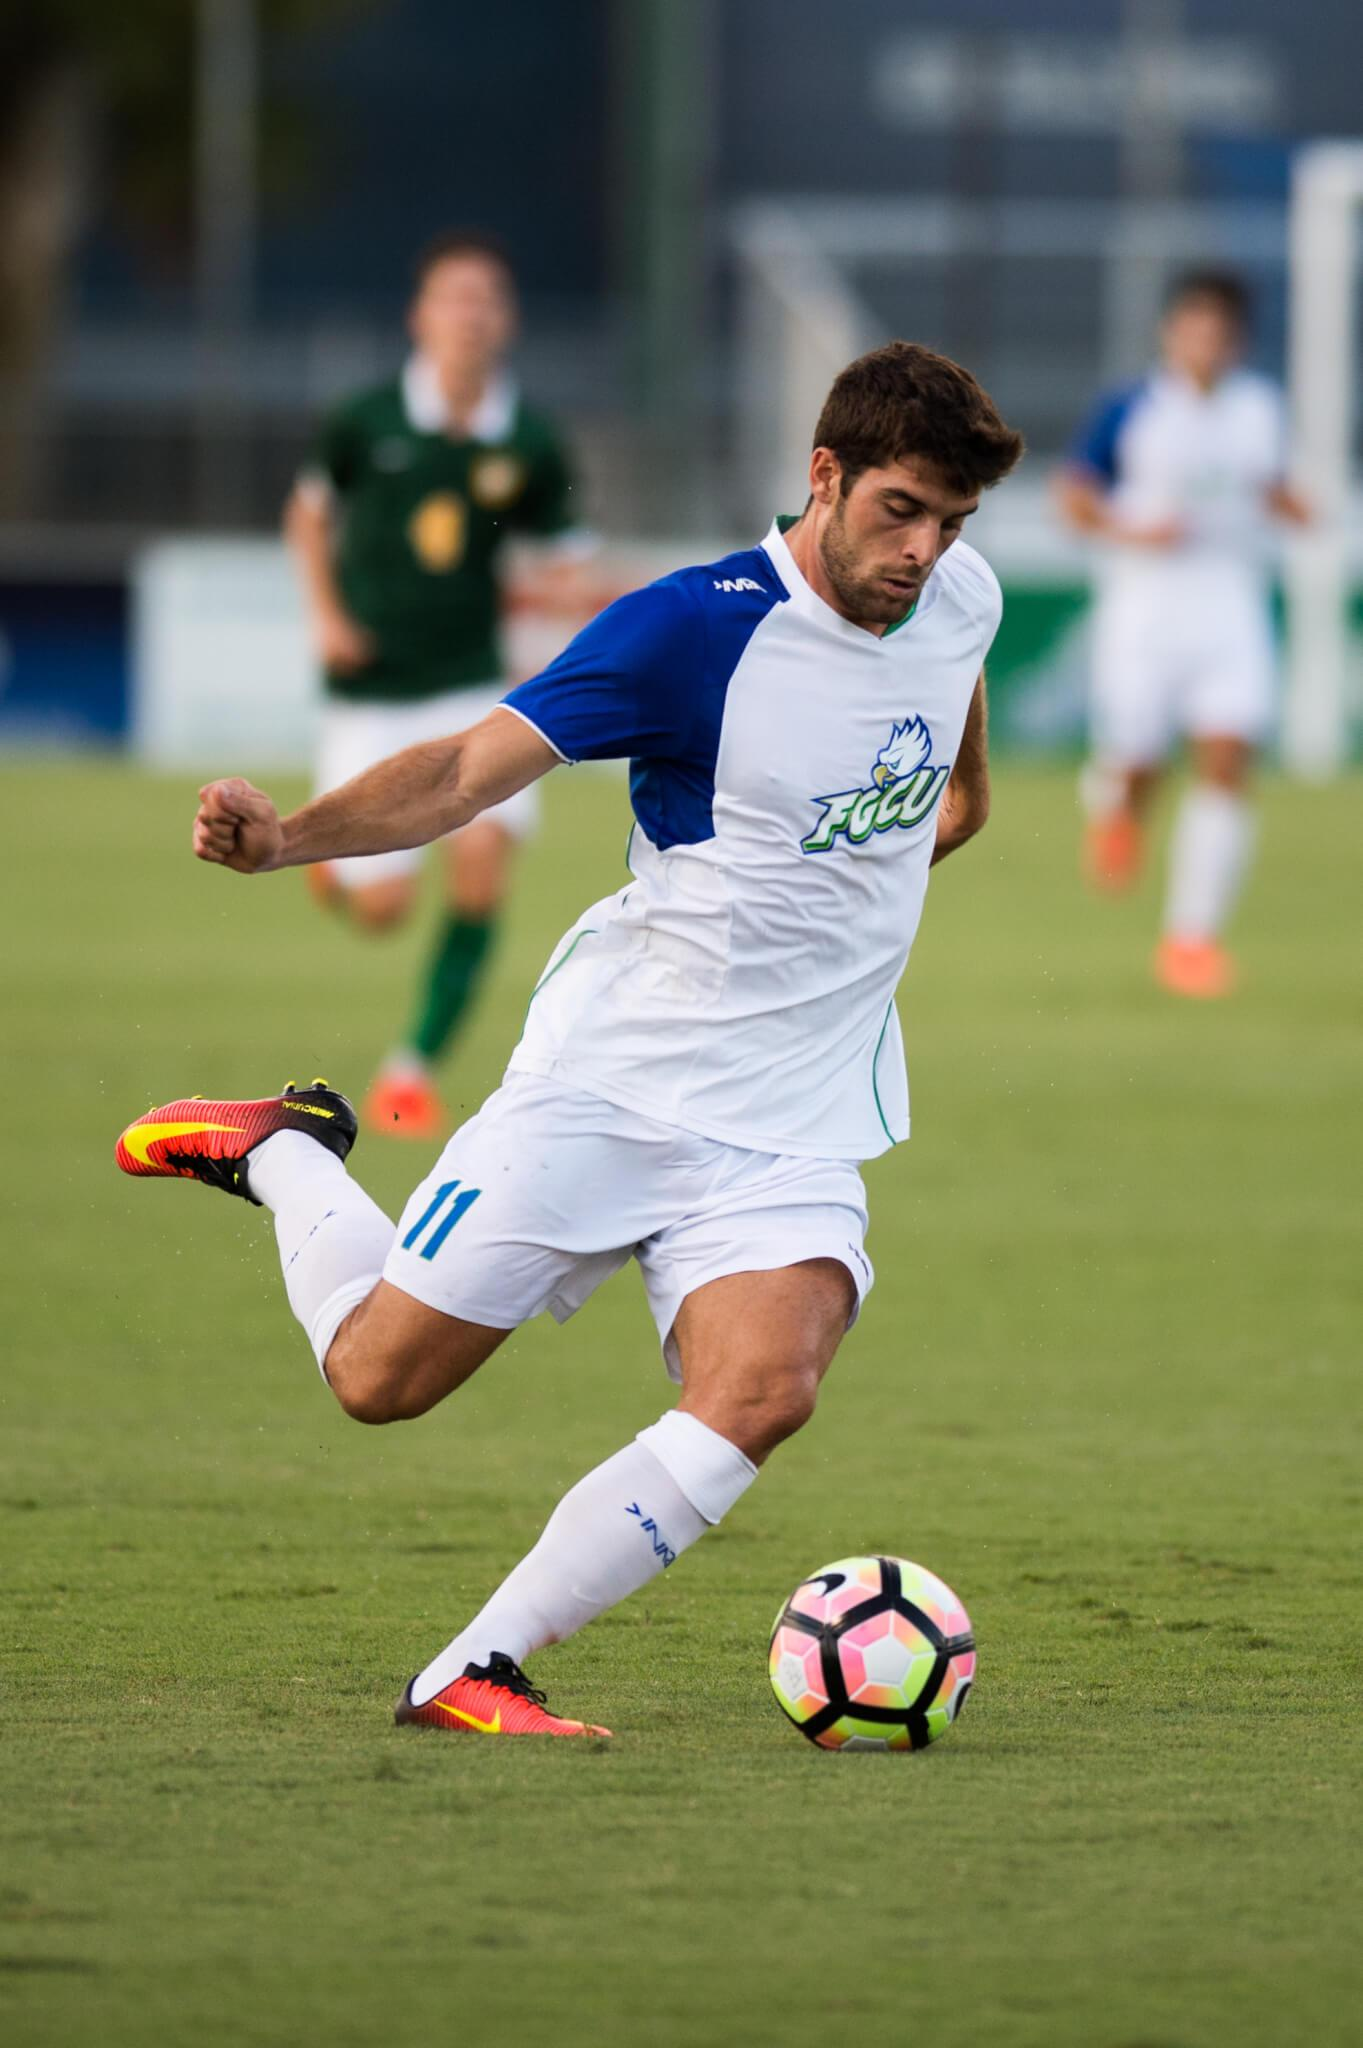 Preview: FGCU men's soccer at ASUN Men's Soccer Championship